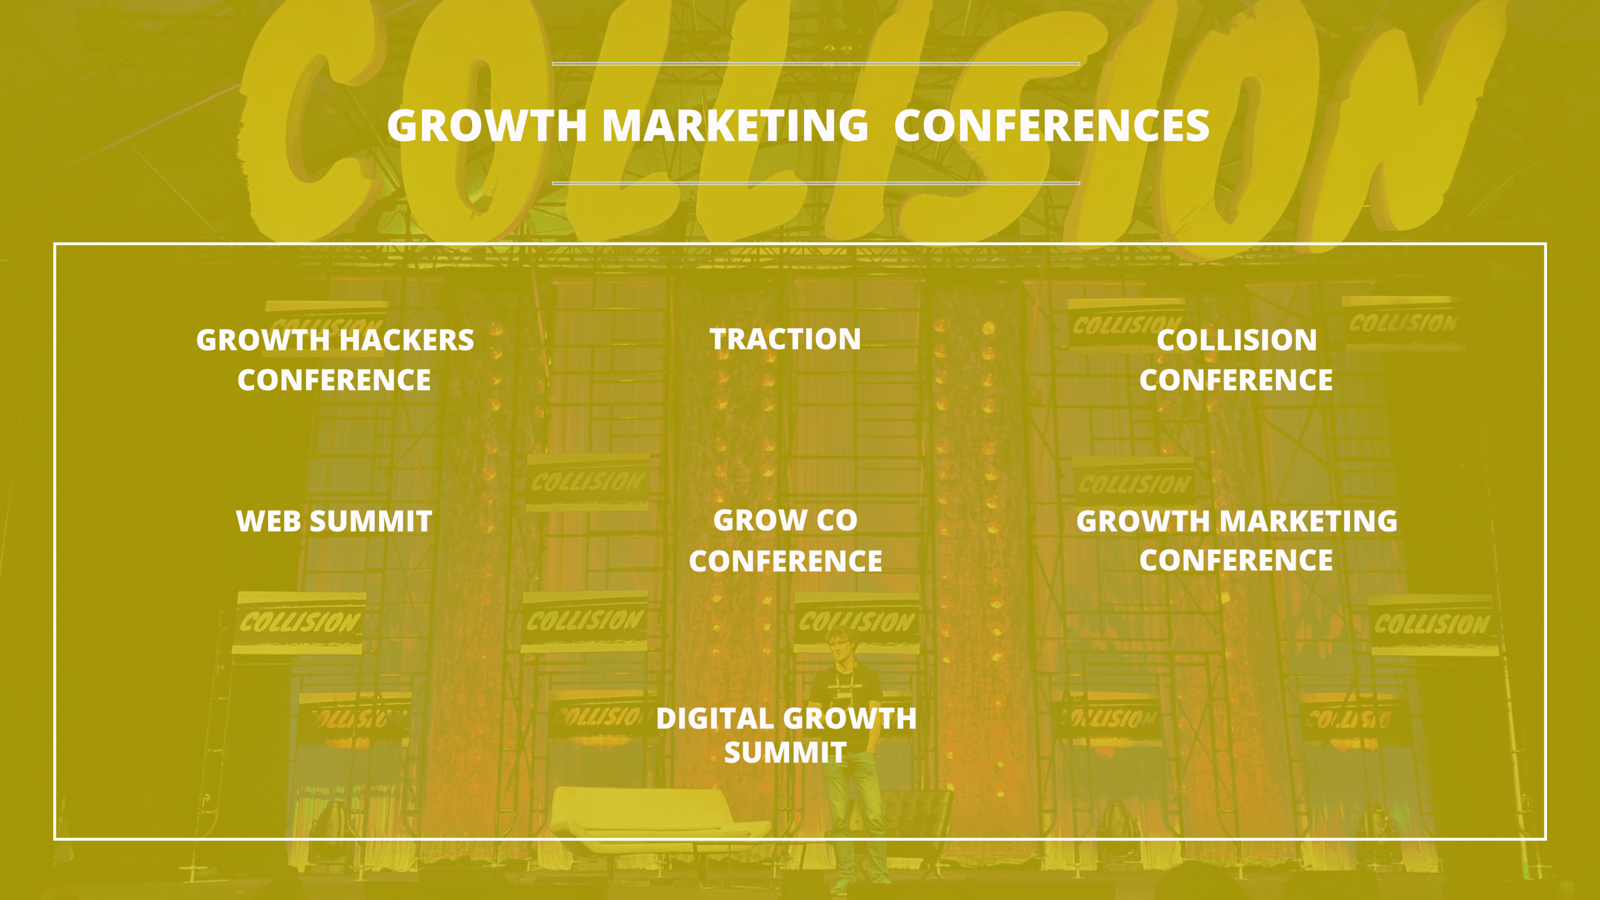 Top 7 Digital Marketing Conferences on Growth Marketing